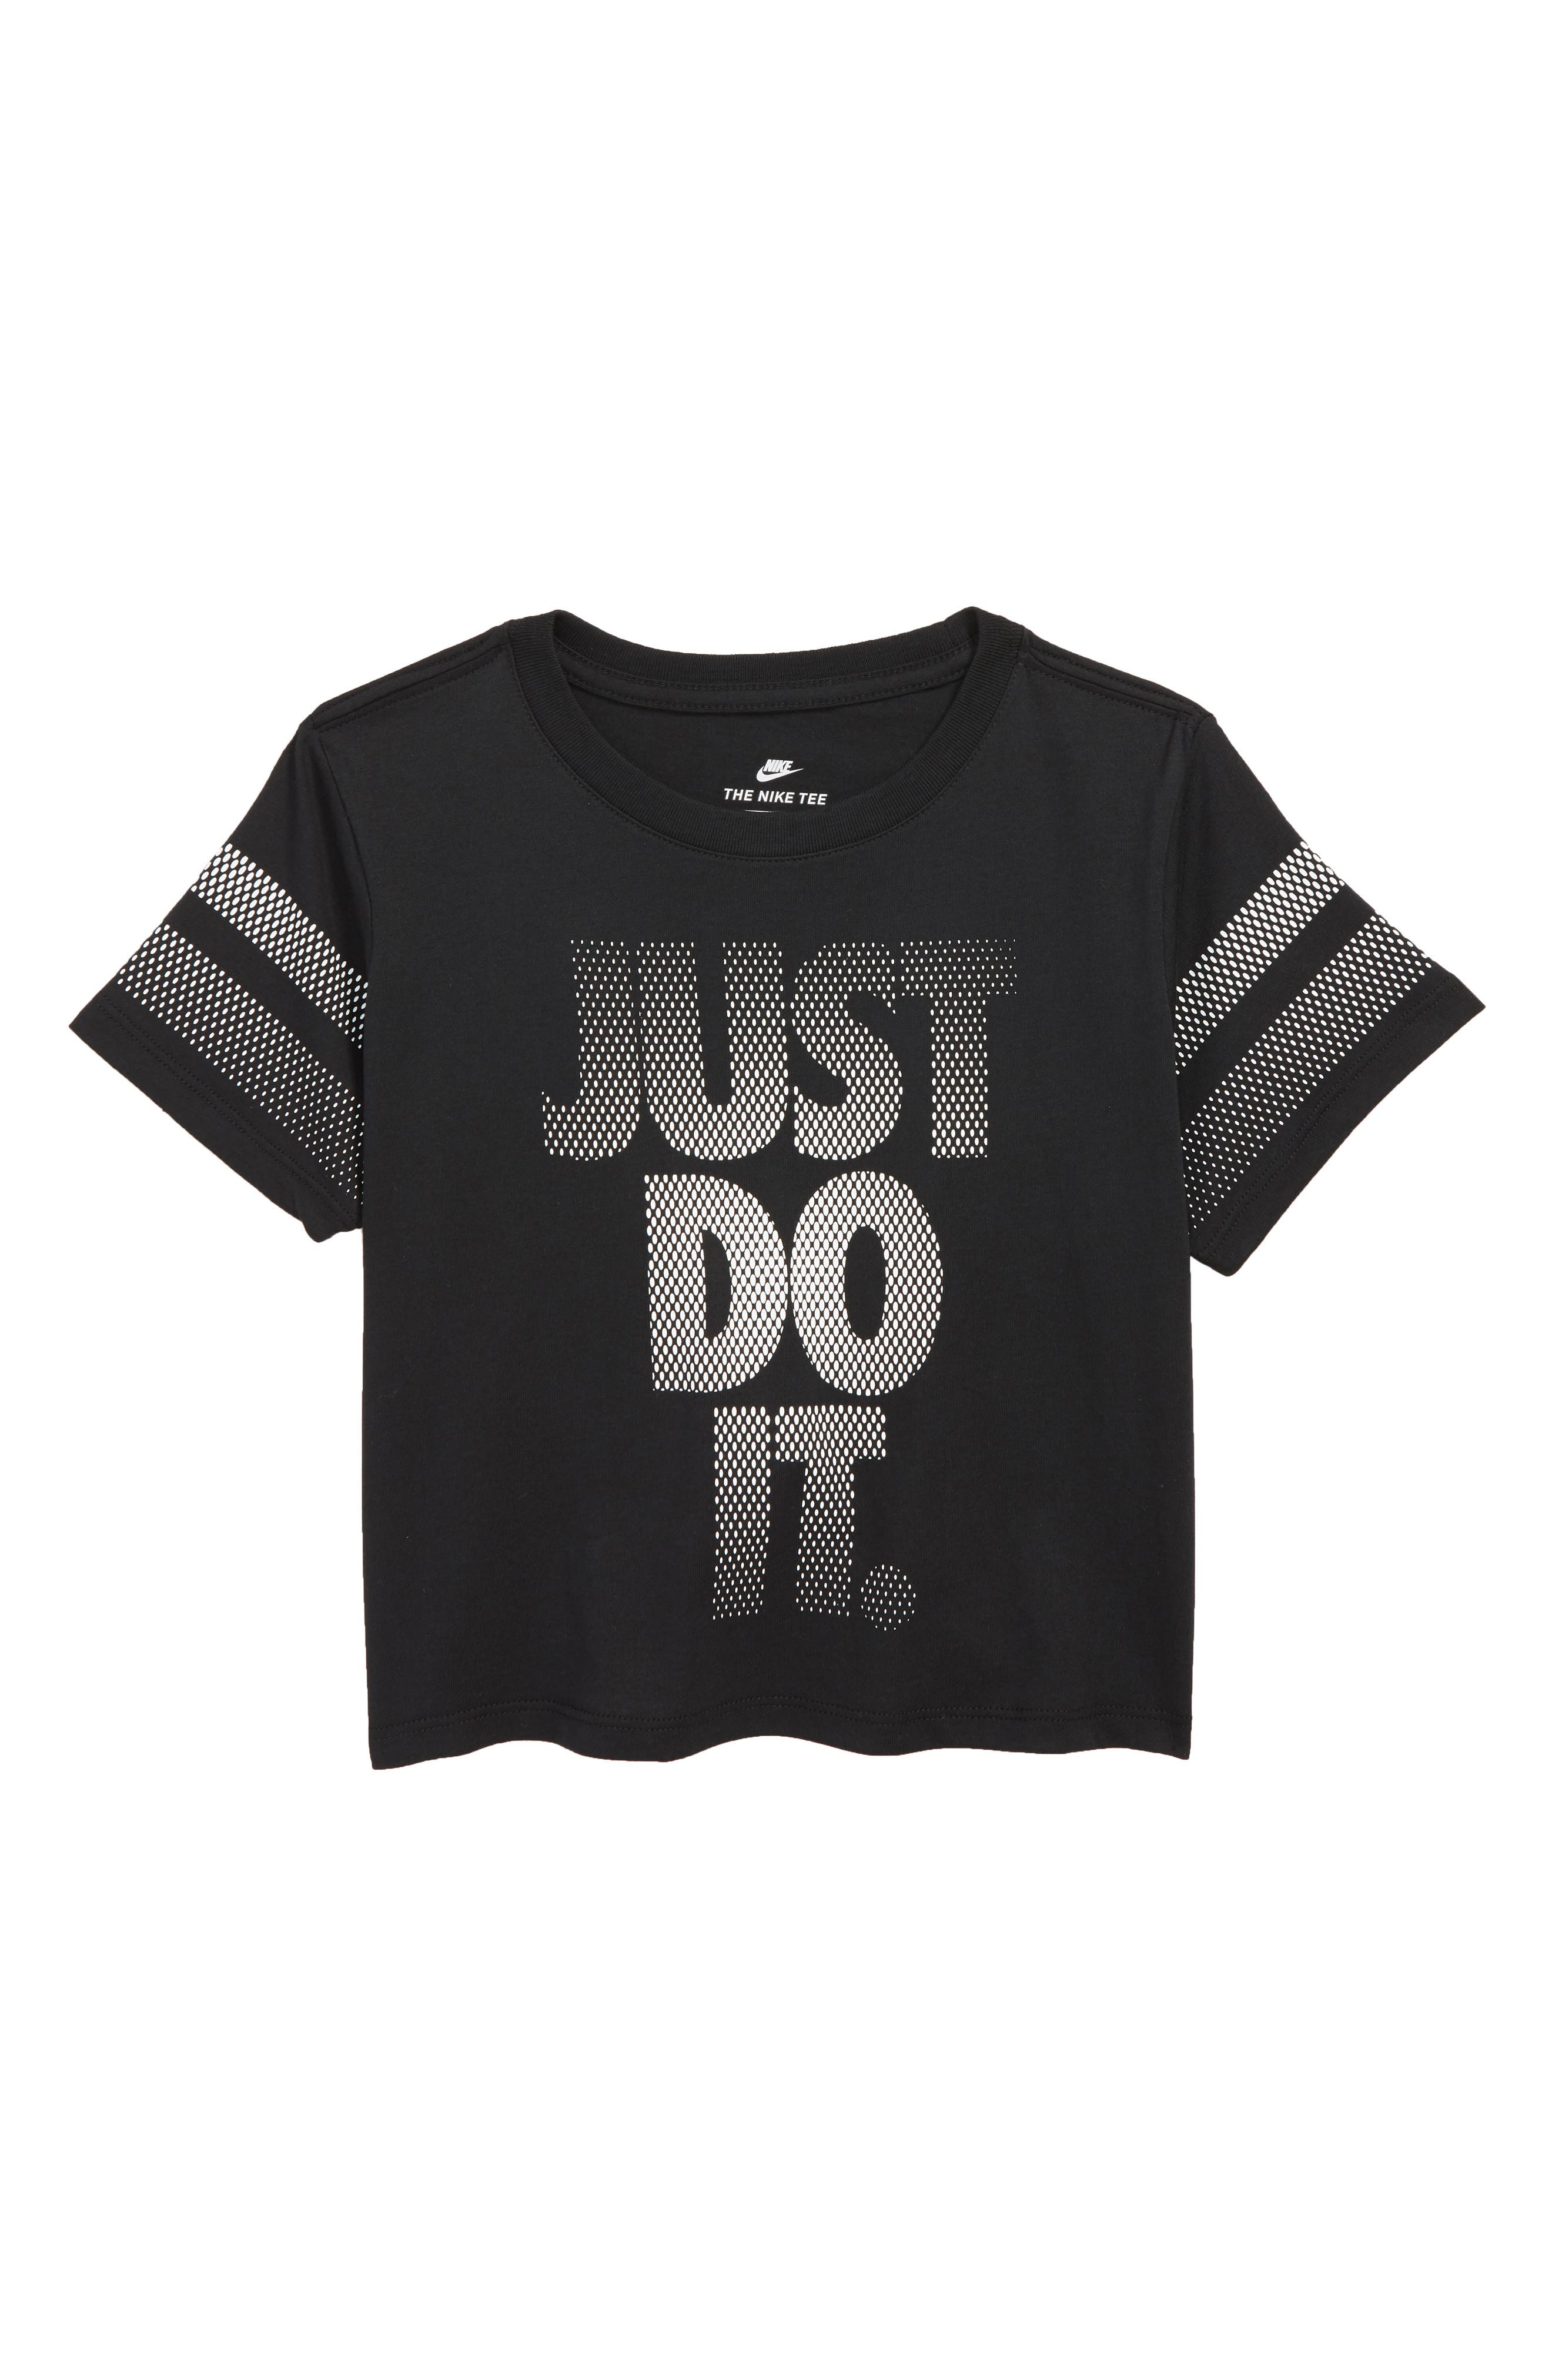 Sportswear Just Do It Tee,                             Main thumbnail 1, color,                             BLACK/ WHITE